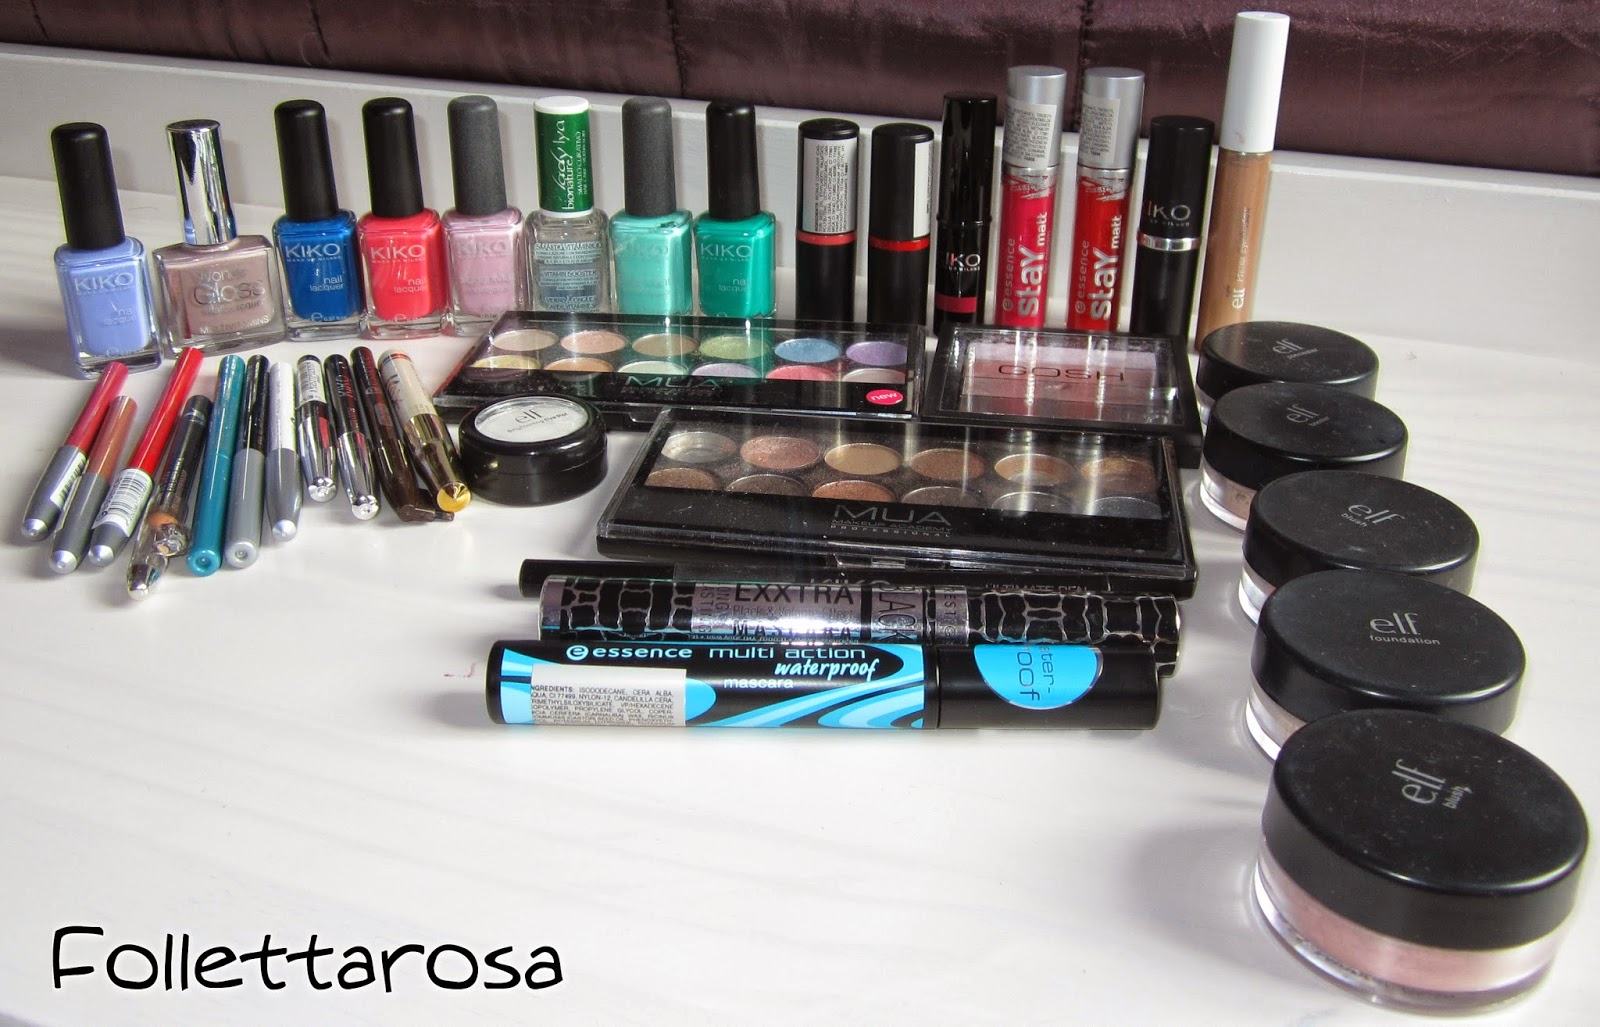 cosmetici beauty case da viaggio